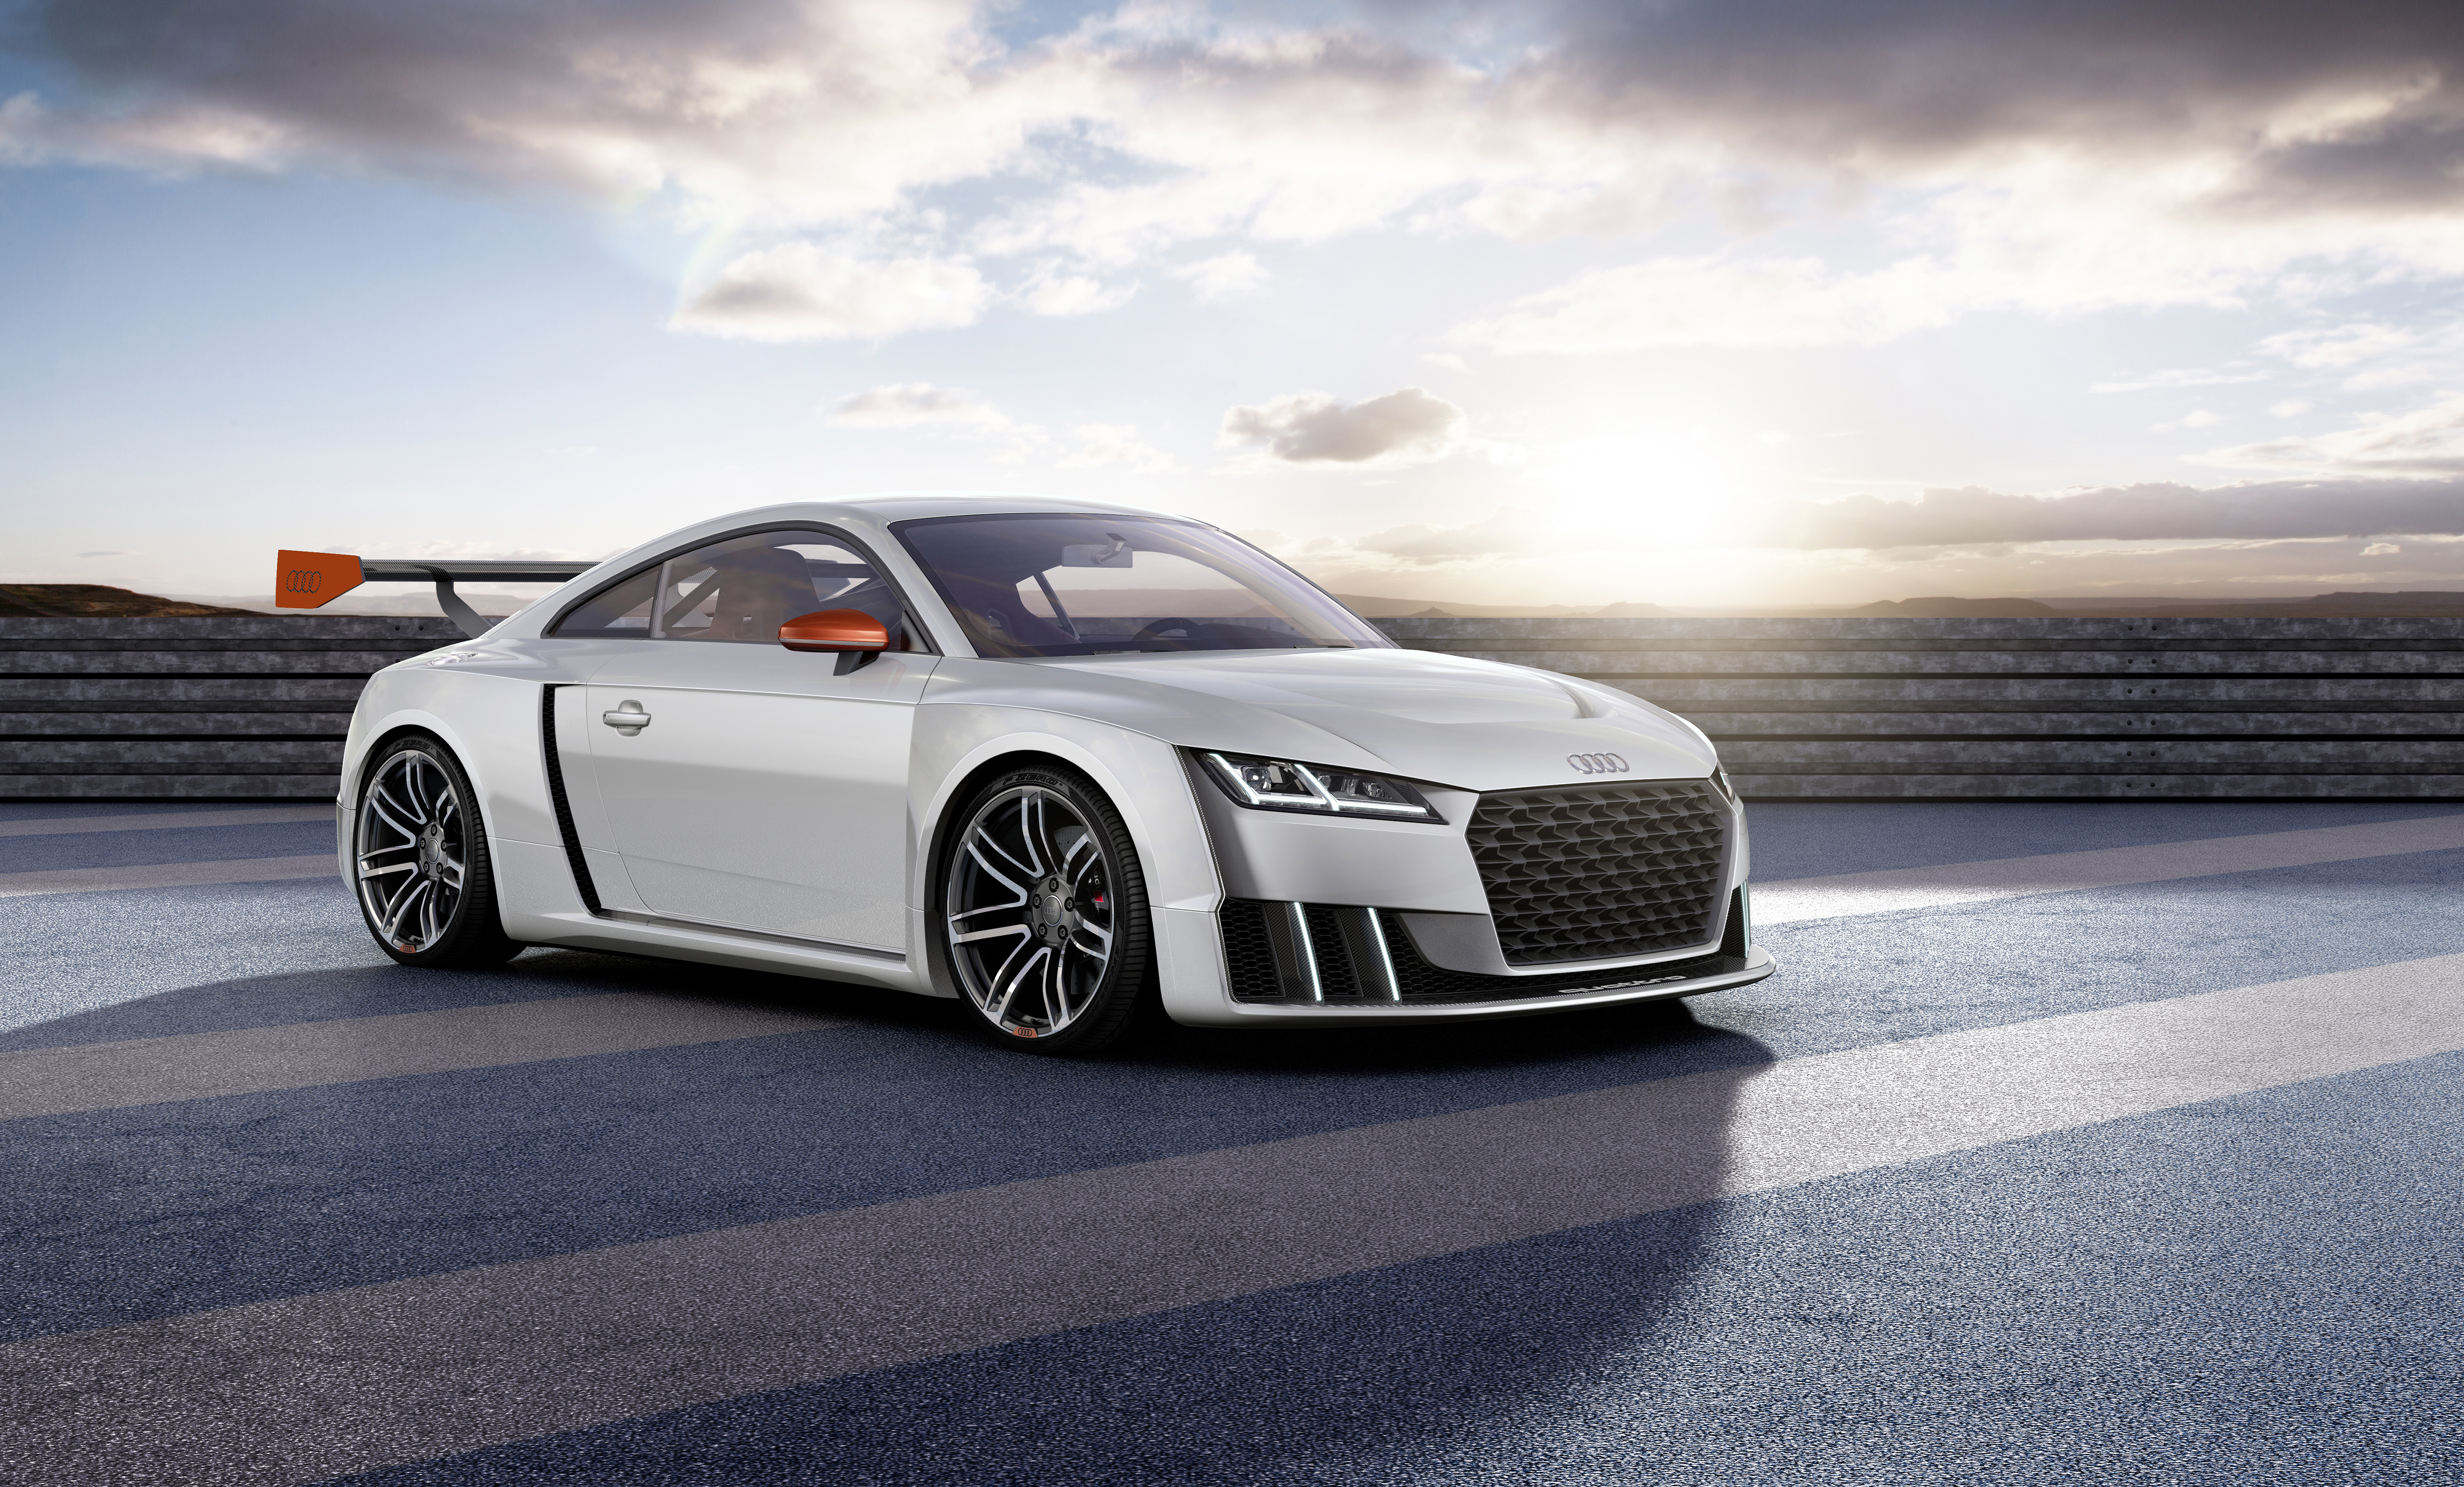 Audi Tt Clubsport Turbo Concept 2020 Hd Cars 4k Wallpapers Images Backgrounds Photos And Pictures